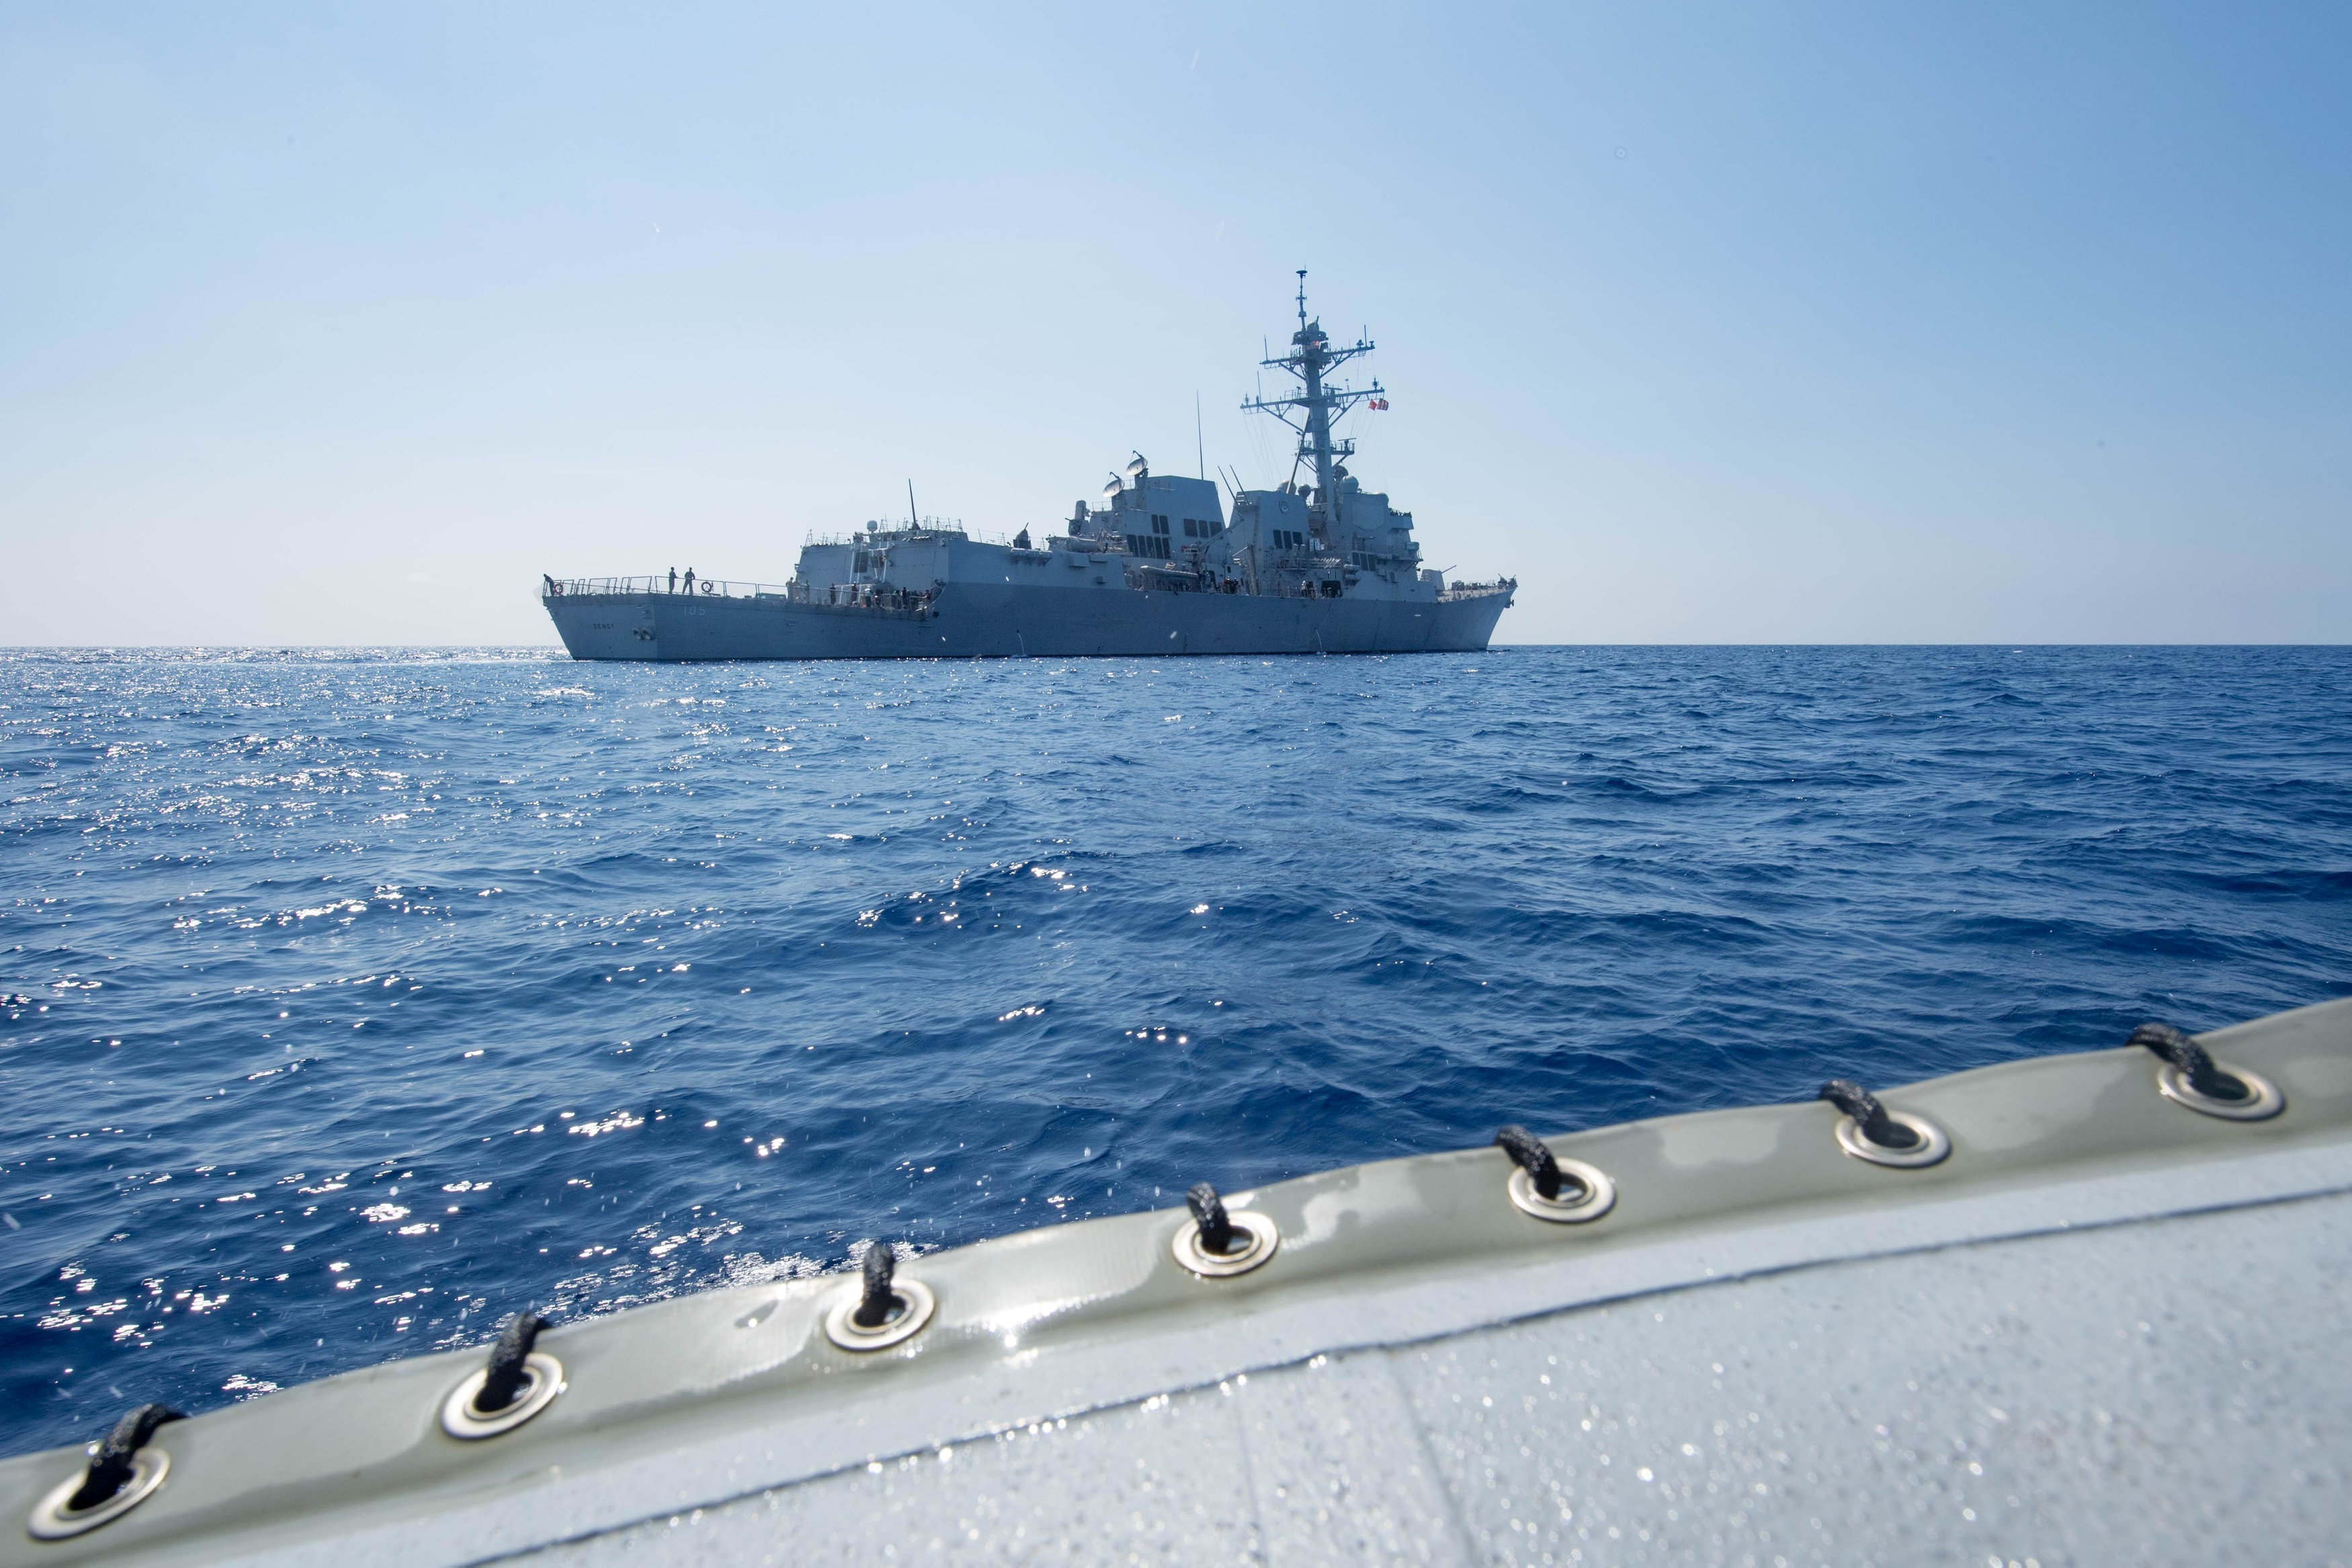 Arleigh Burke-class guided-missile destroyer USS Dewey transits the South China Sea May 6, 2017. Picture taken May 6, 2017. Kryzentia Weiermann/Courtesy U.S. Navy/Handout via REUTERS